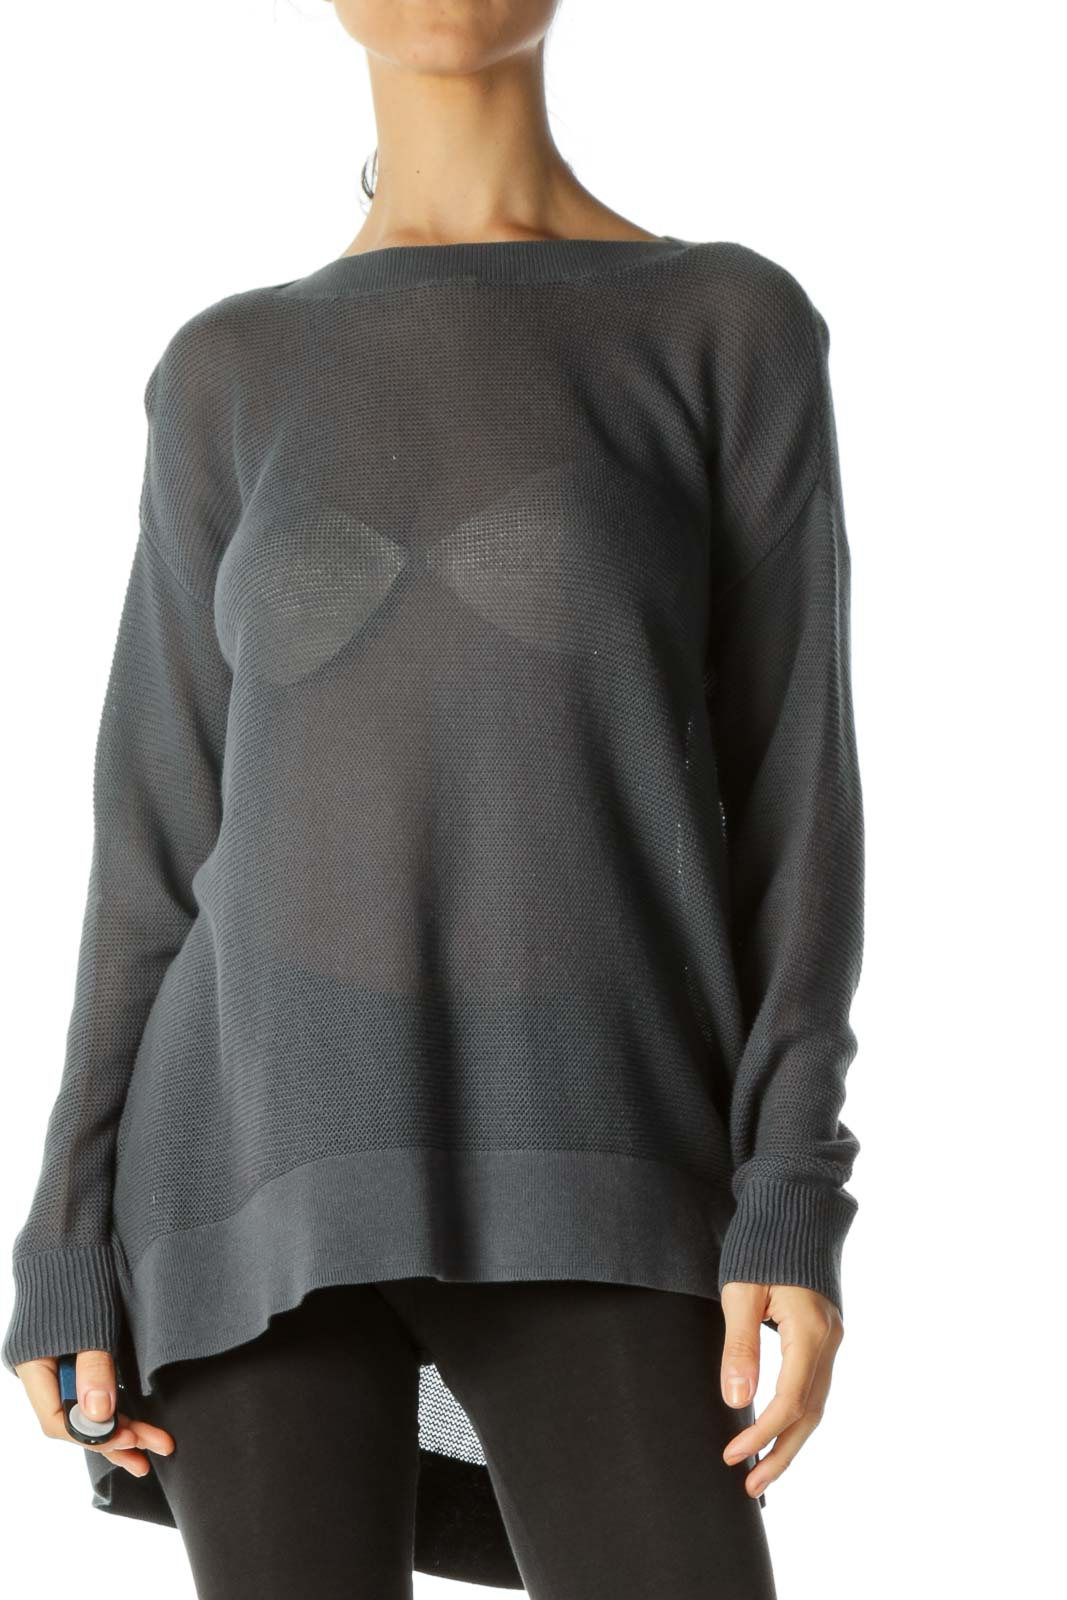 Gray Round Neck Soft See-Through Long Sleeve Knit Top